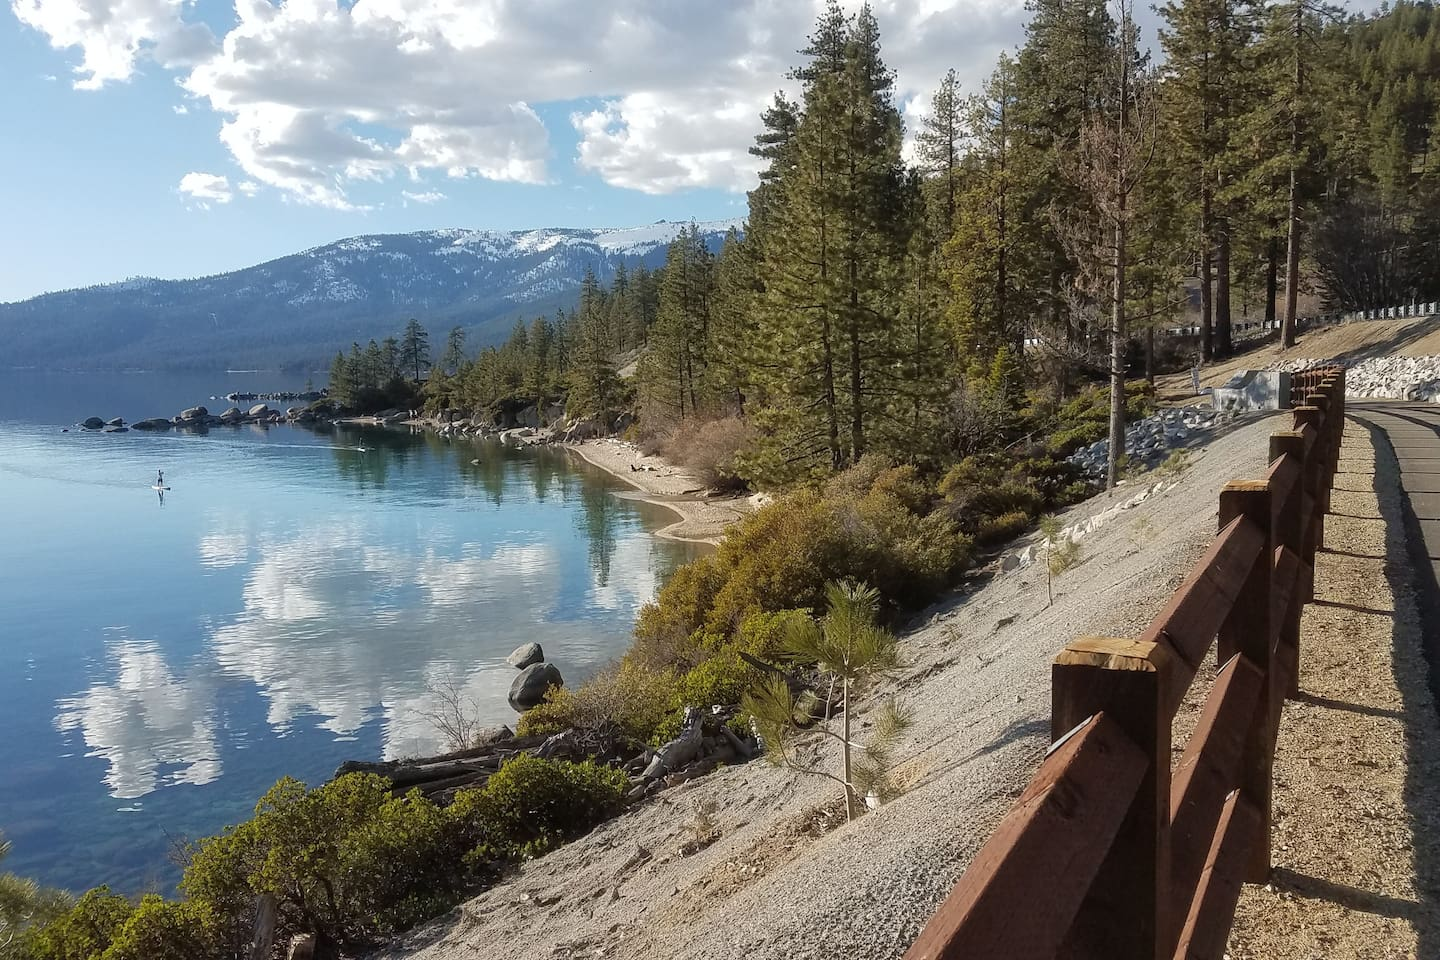 East Shore Trail (opens June 28) starts one easy walk or bike mile from the house (huge advantage as this will become the most popular trail in Tahoe and parking will be impossible)